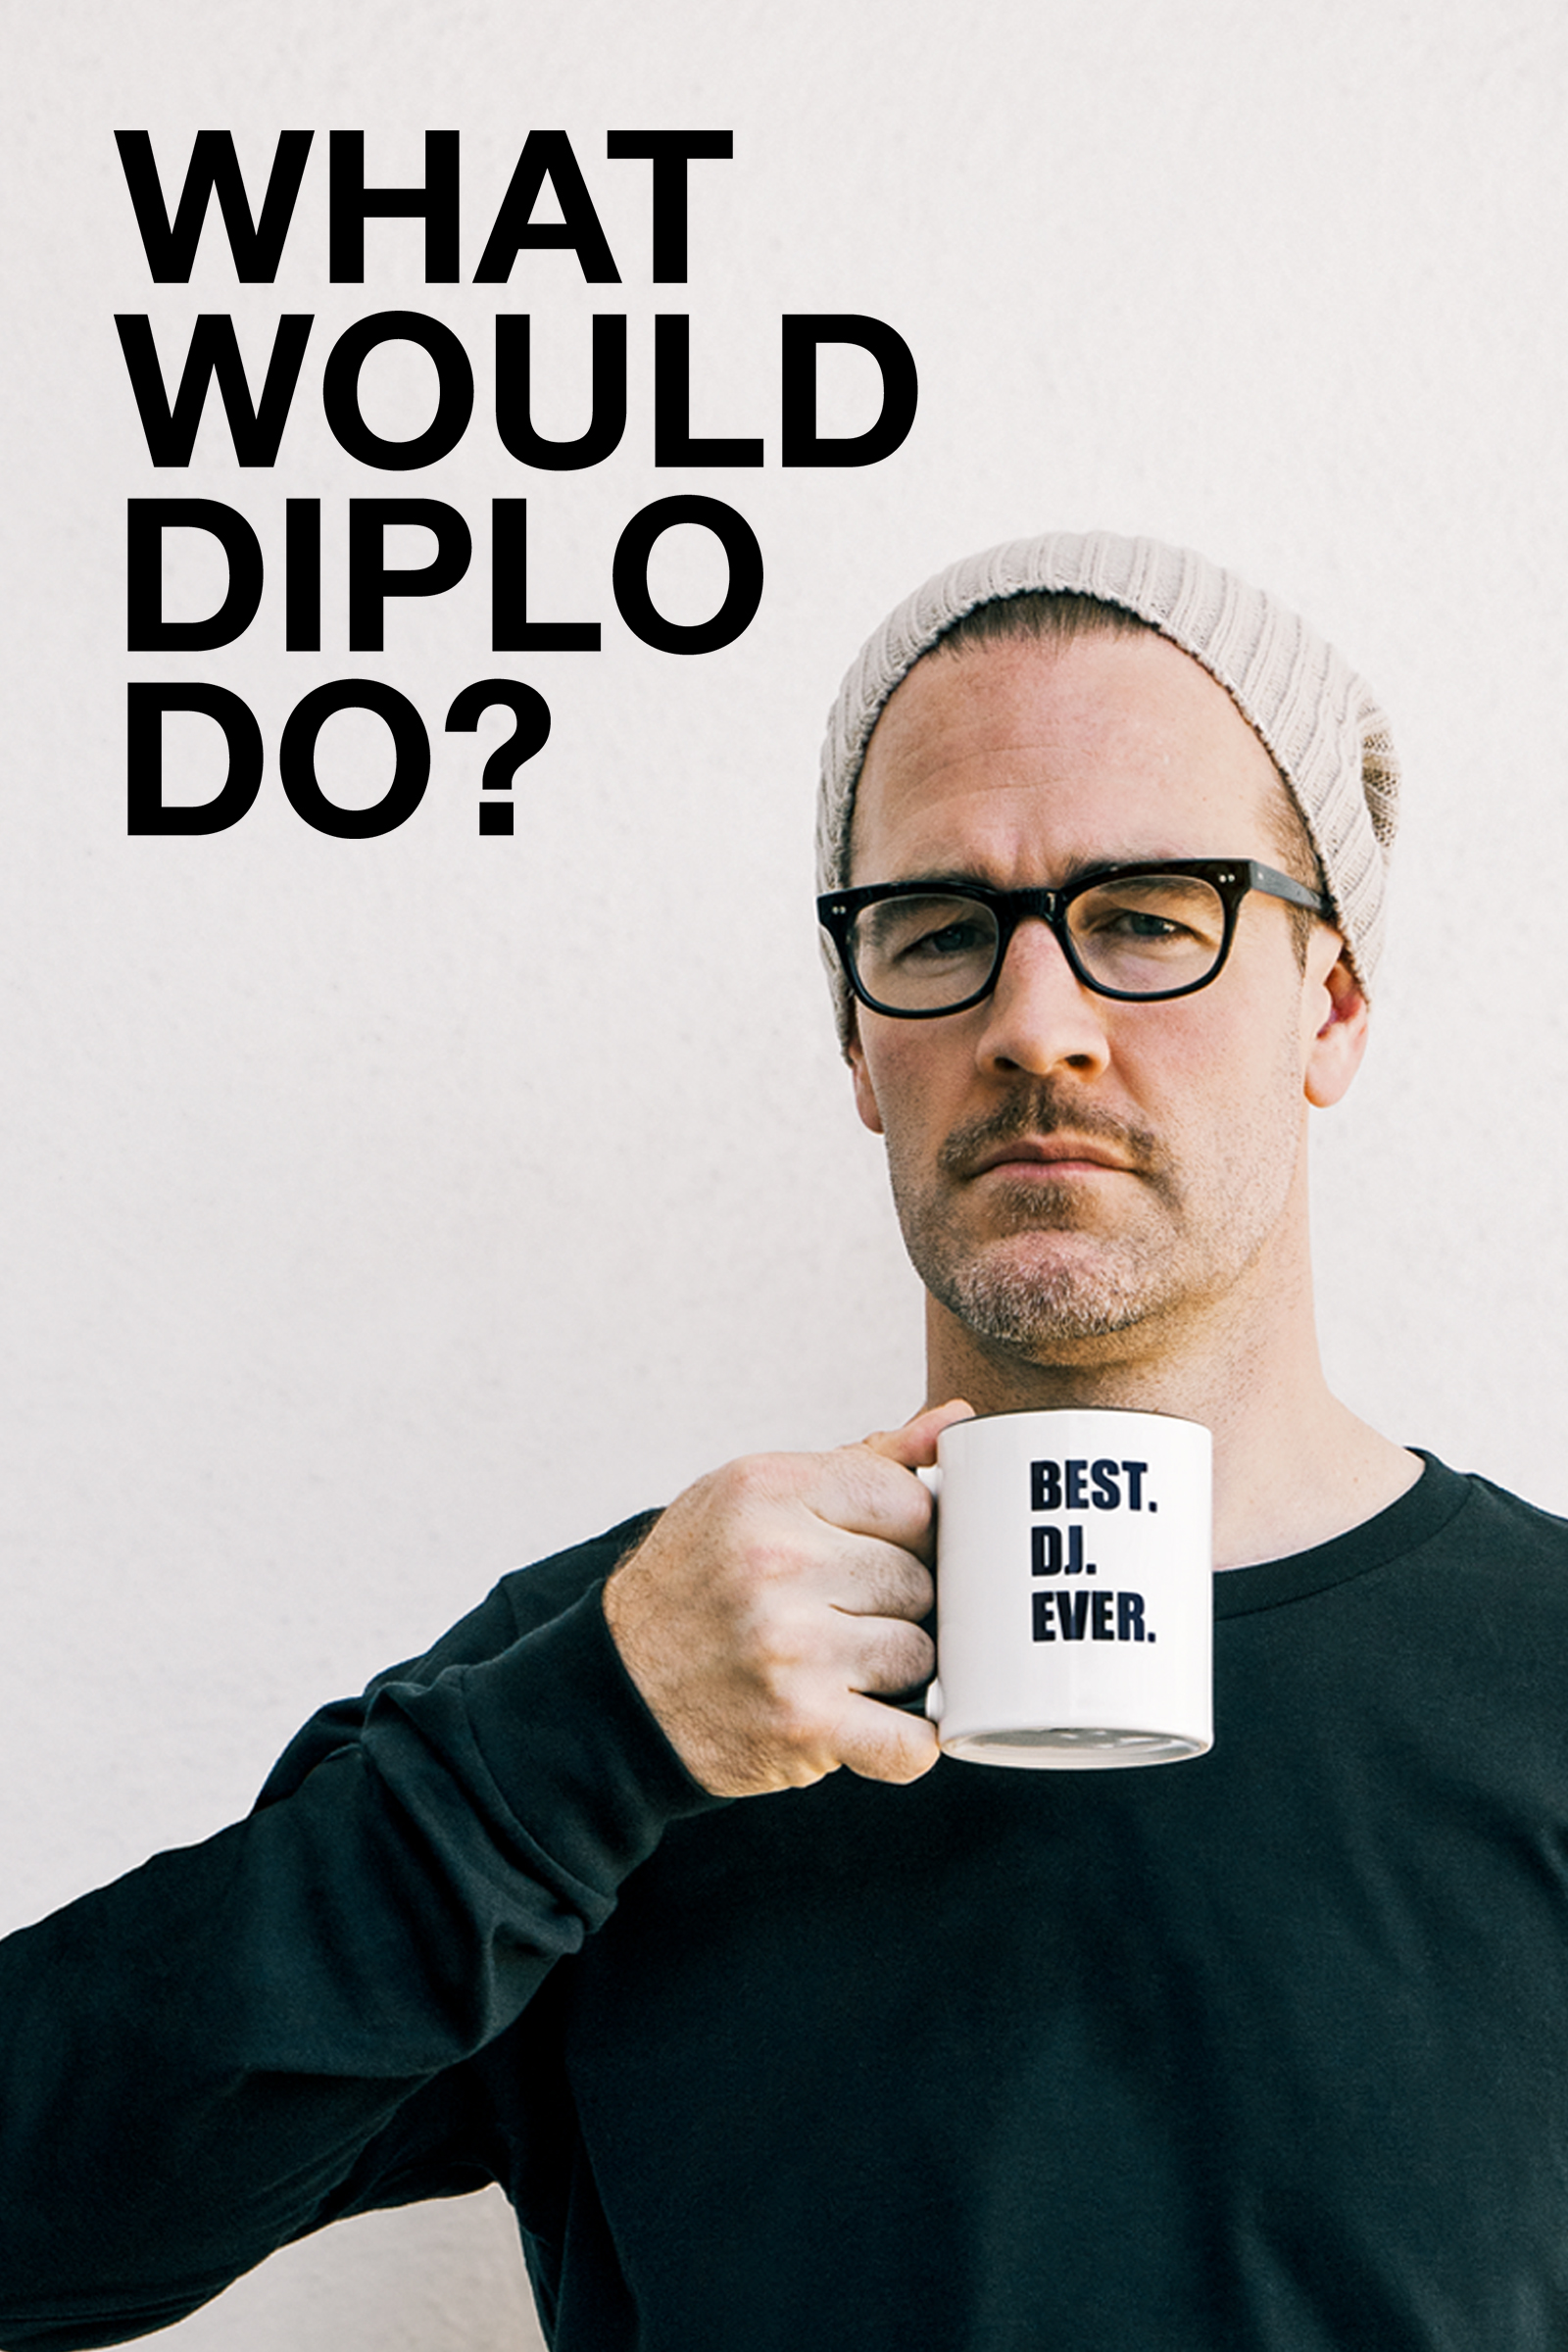 What Would Diplo Do? - IMDbPro